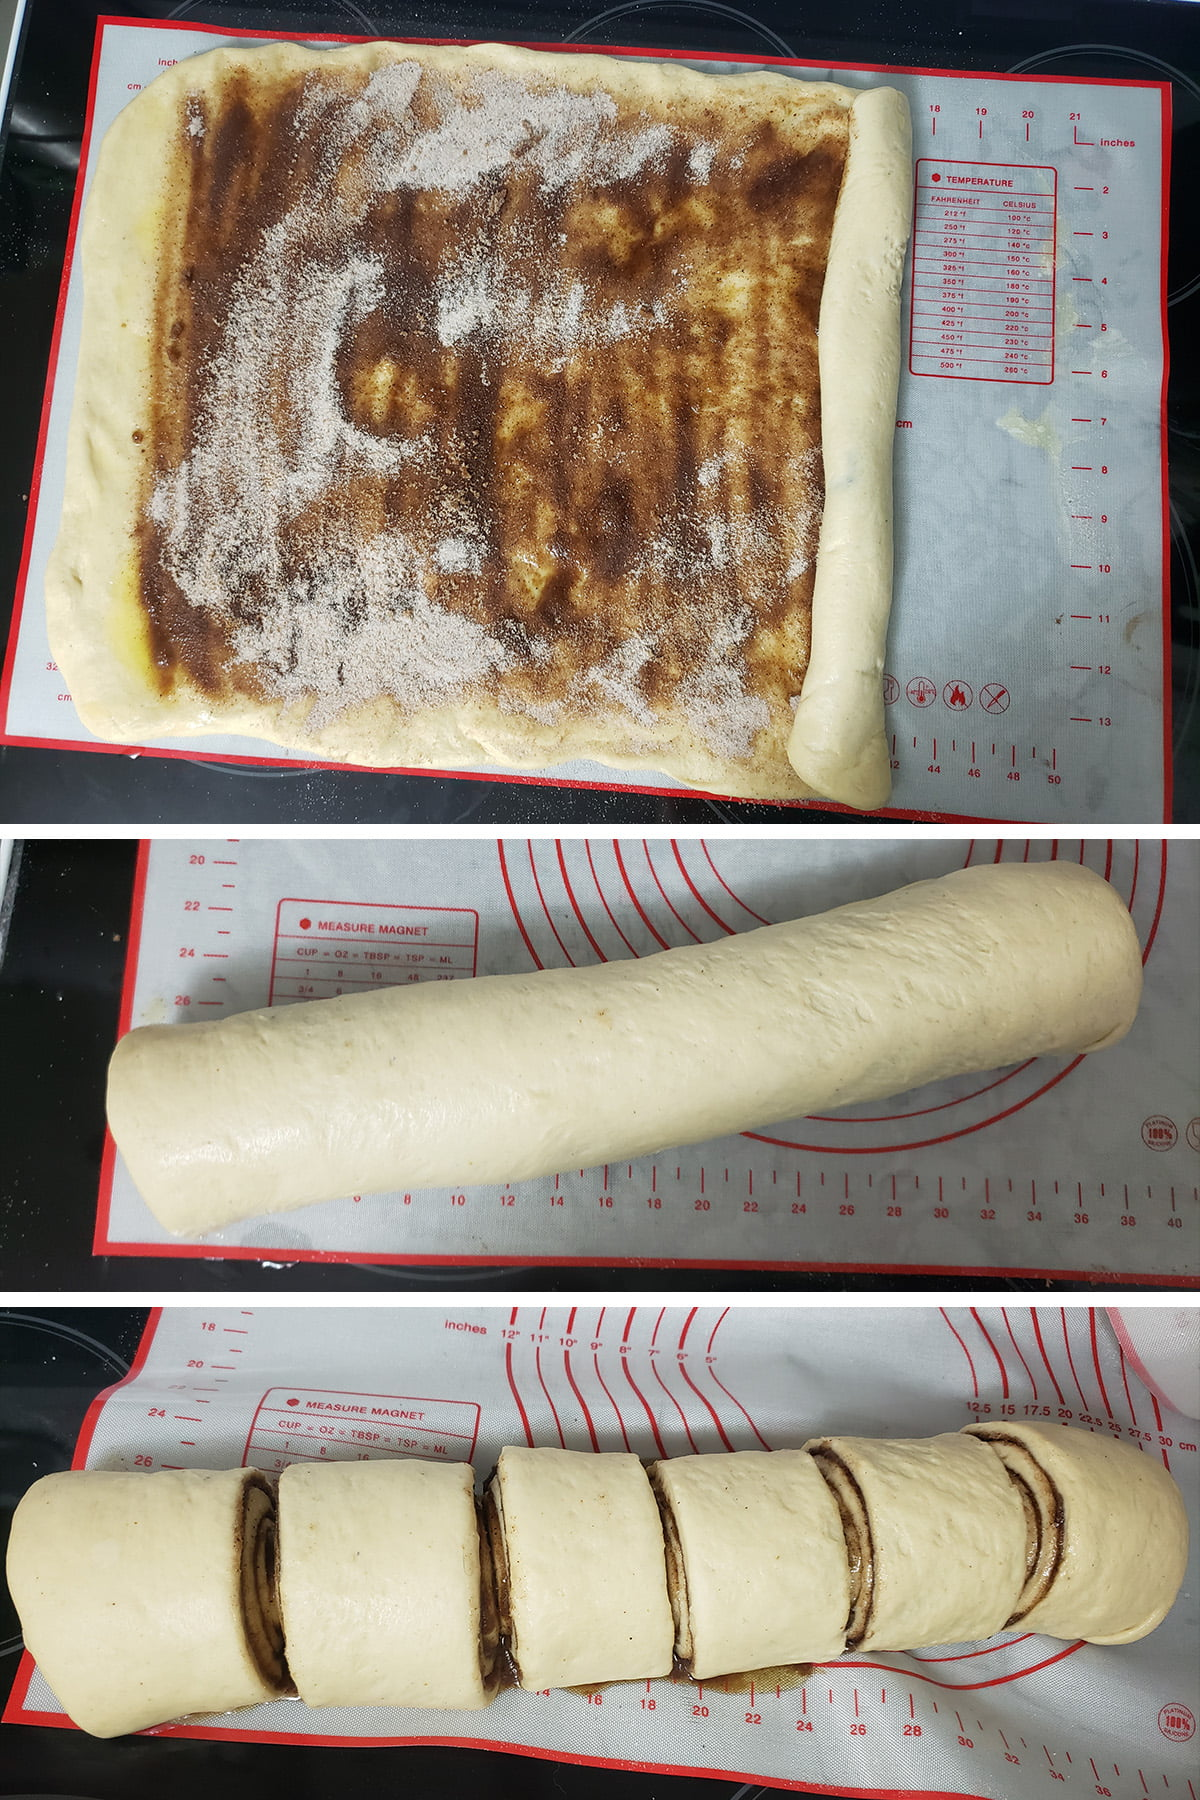 A three photo compilation image, showing the dough at the start of being rolled, having been completely rolled, and the finished log having been cut into 6 pieces.